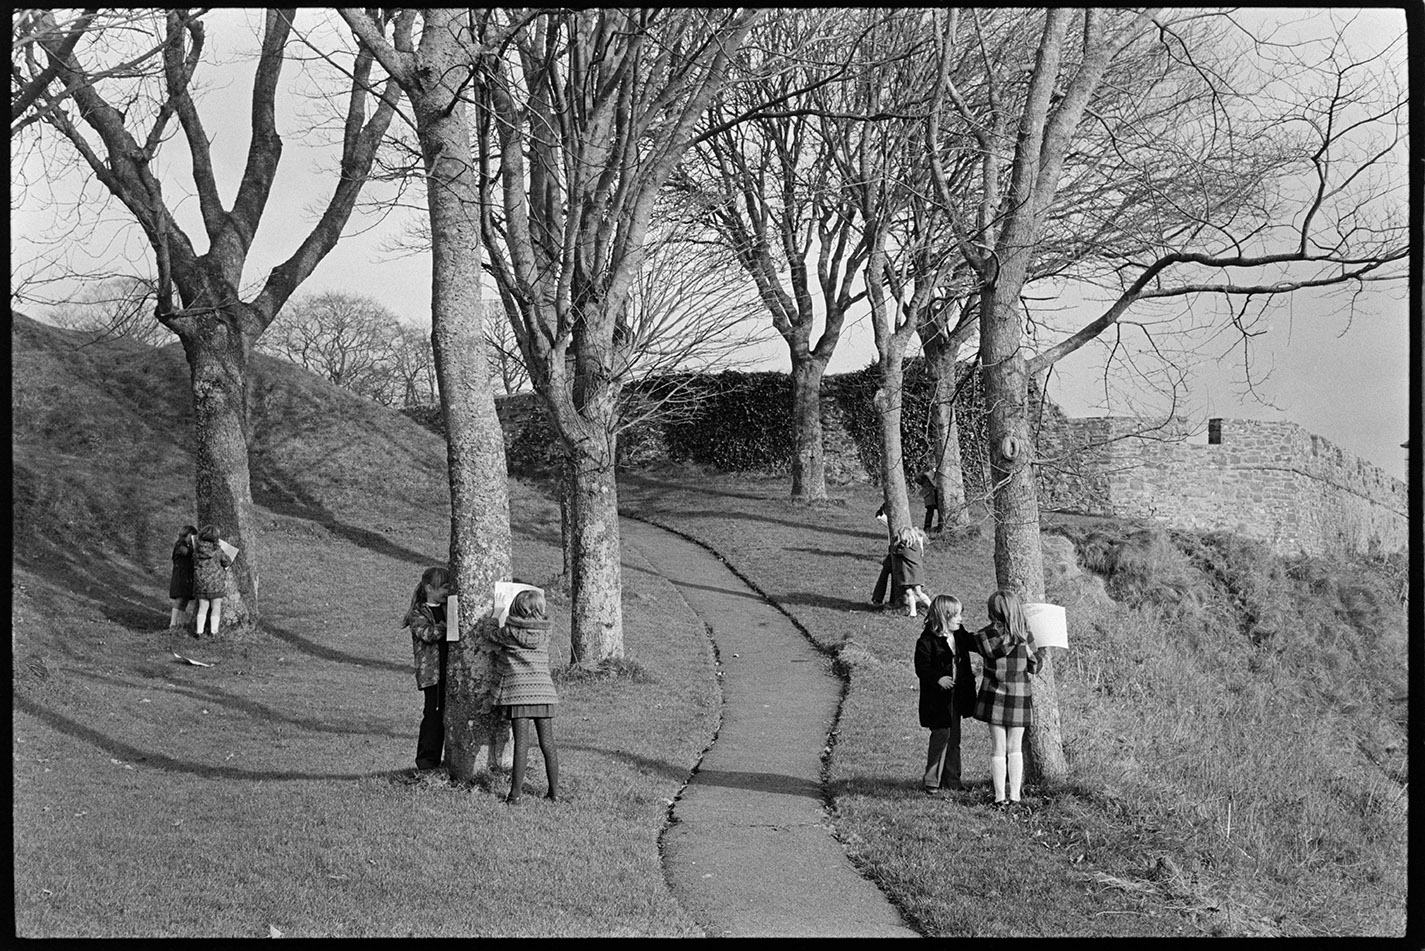 Primary School children doing bark rubbing on trees in park, Torrington, 4 November, 1974.